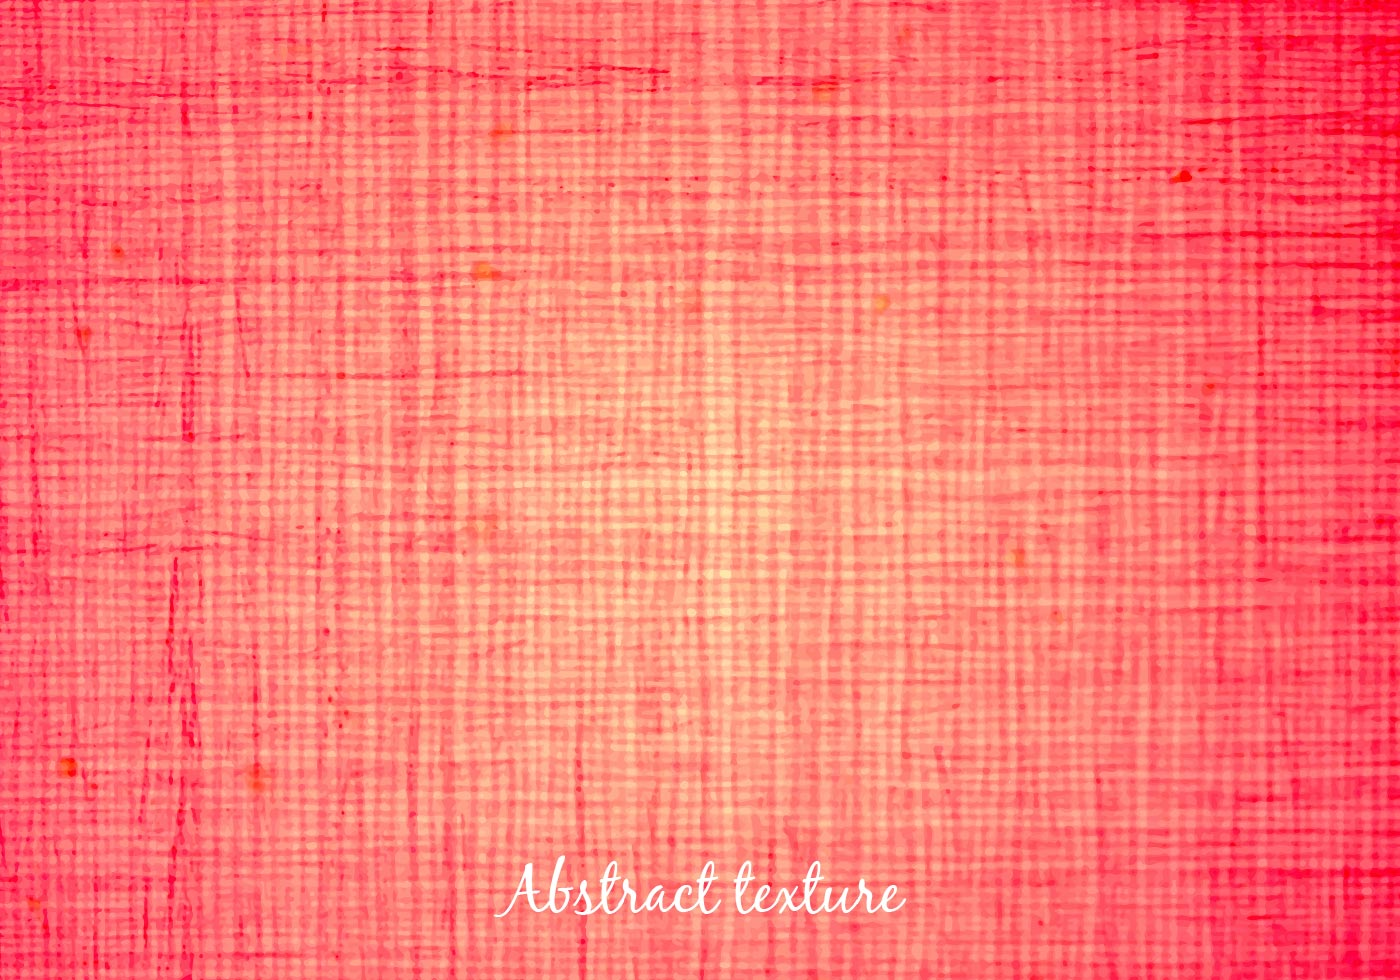 Free Vector Abstract Fabric Texture Download Free Vector Art Stock Graphics Images